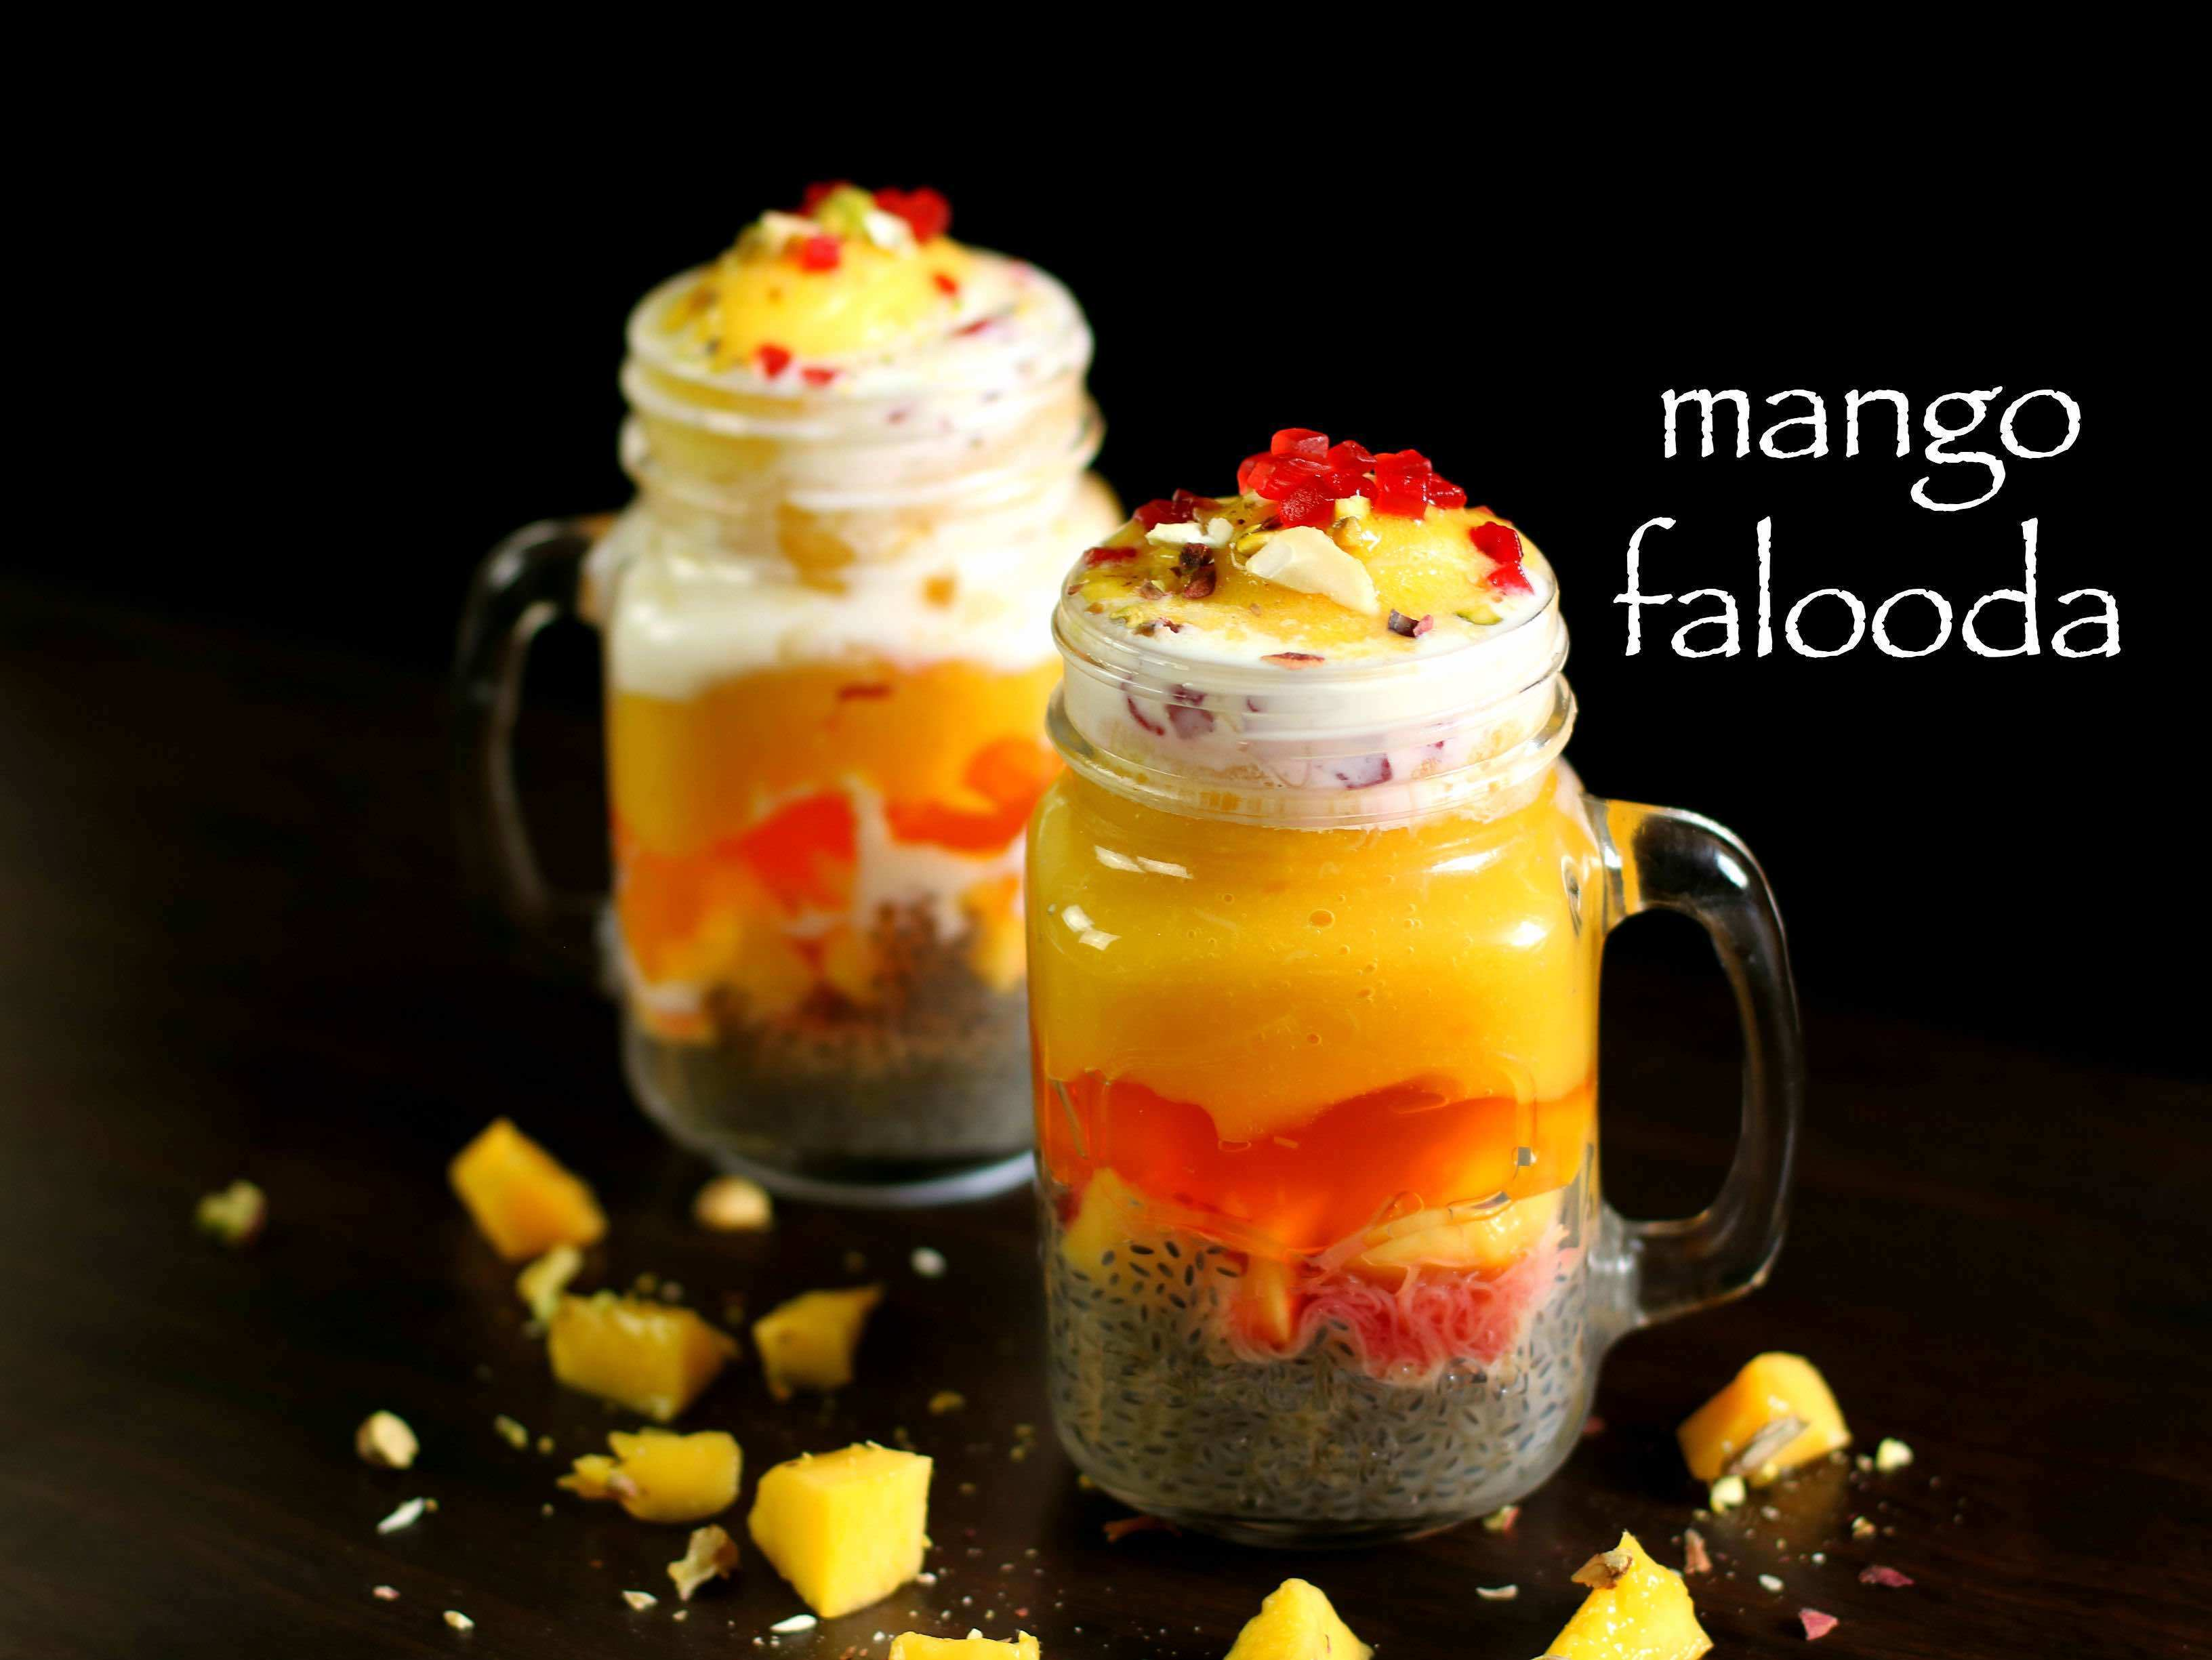 mango falooda recipe | mango faluda ice cream recipe